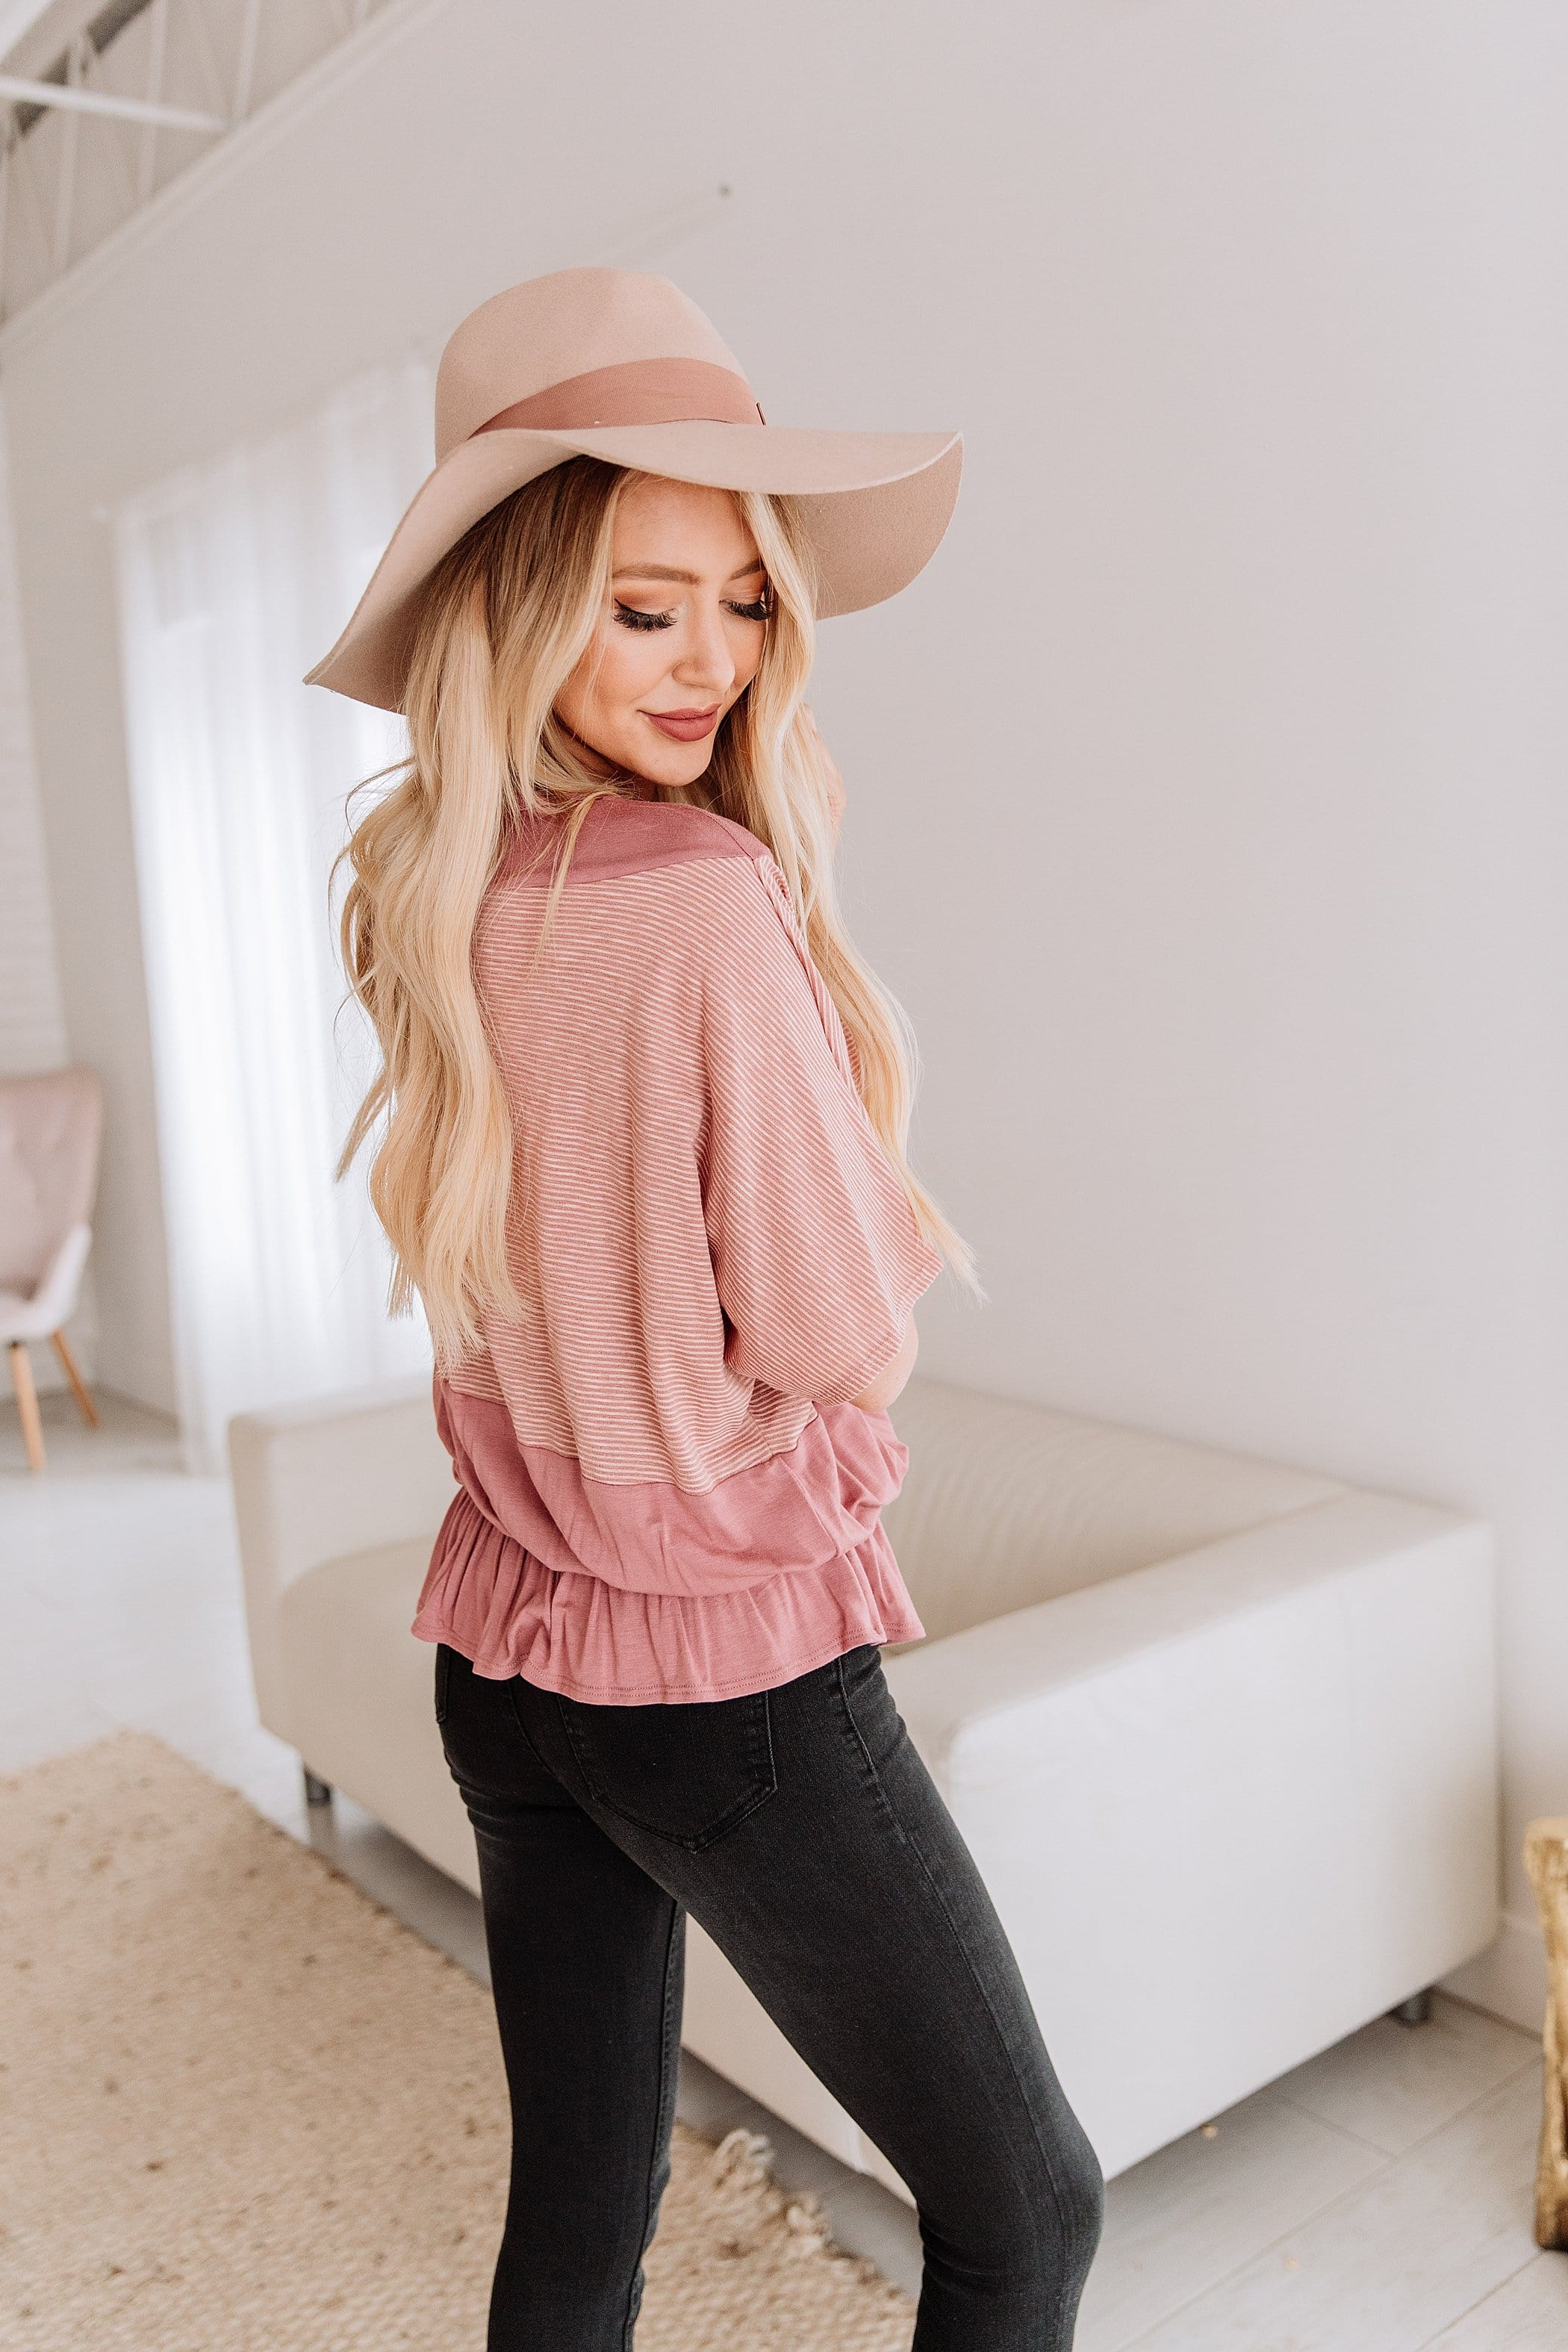 The Wisteria Stripe Top in Grey and Mauve